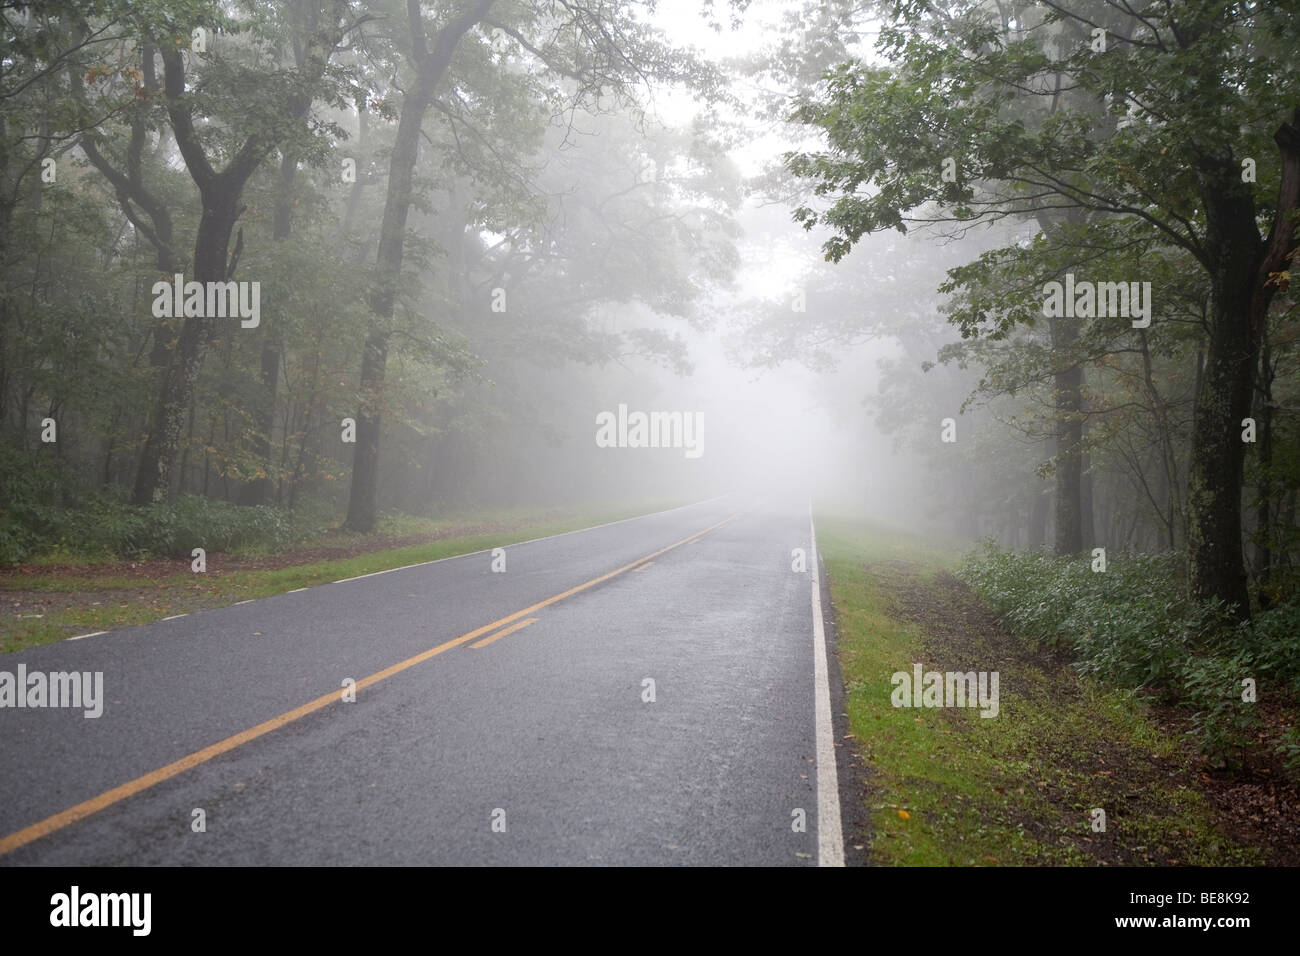 Shenandoah National Park, Virginia - The Skyline Drive in foggy weather. - Stock Image